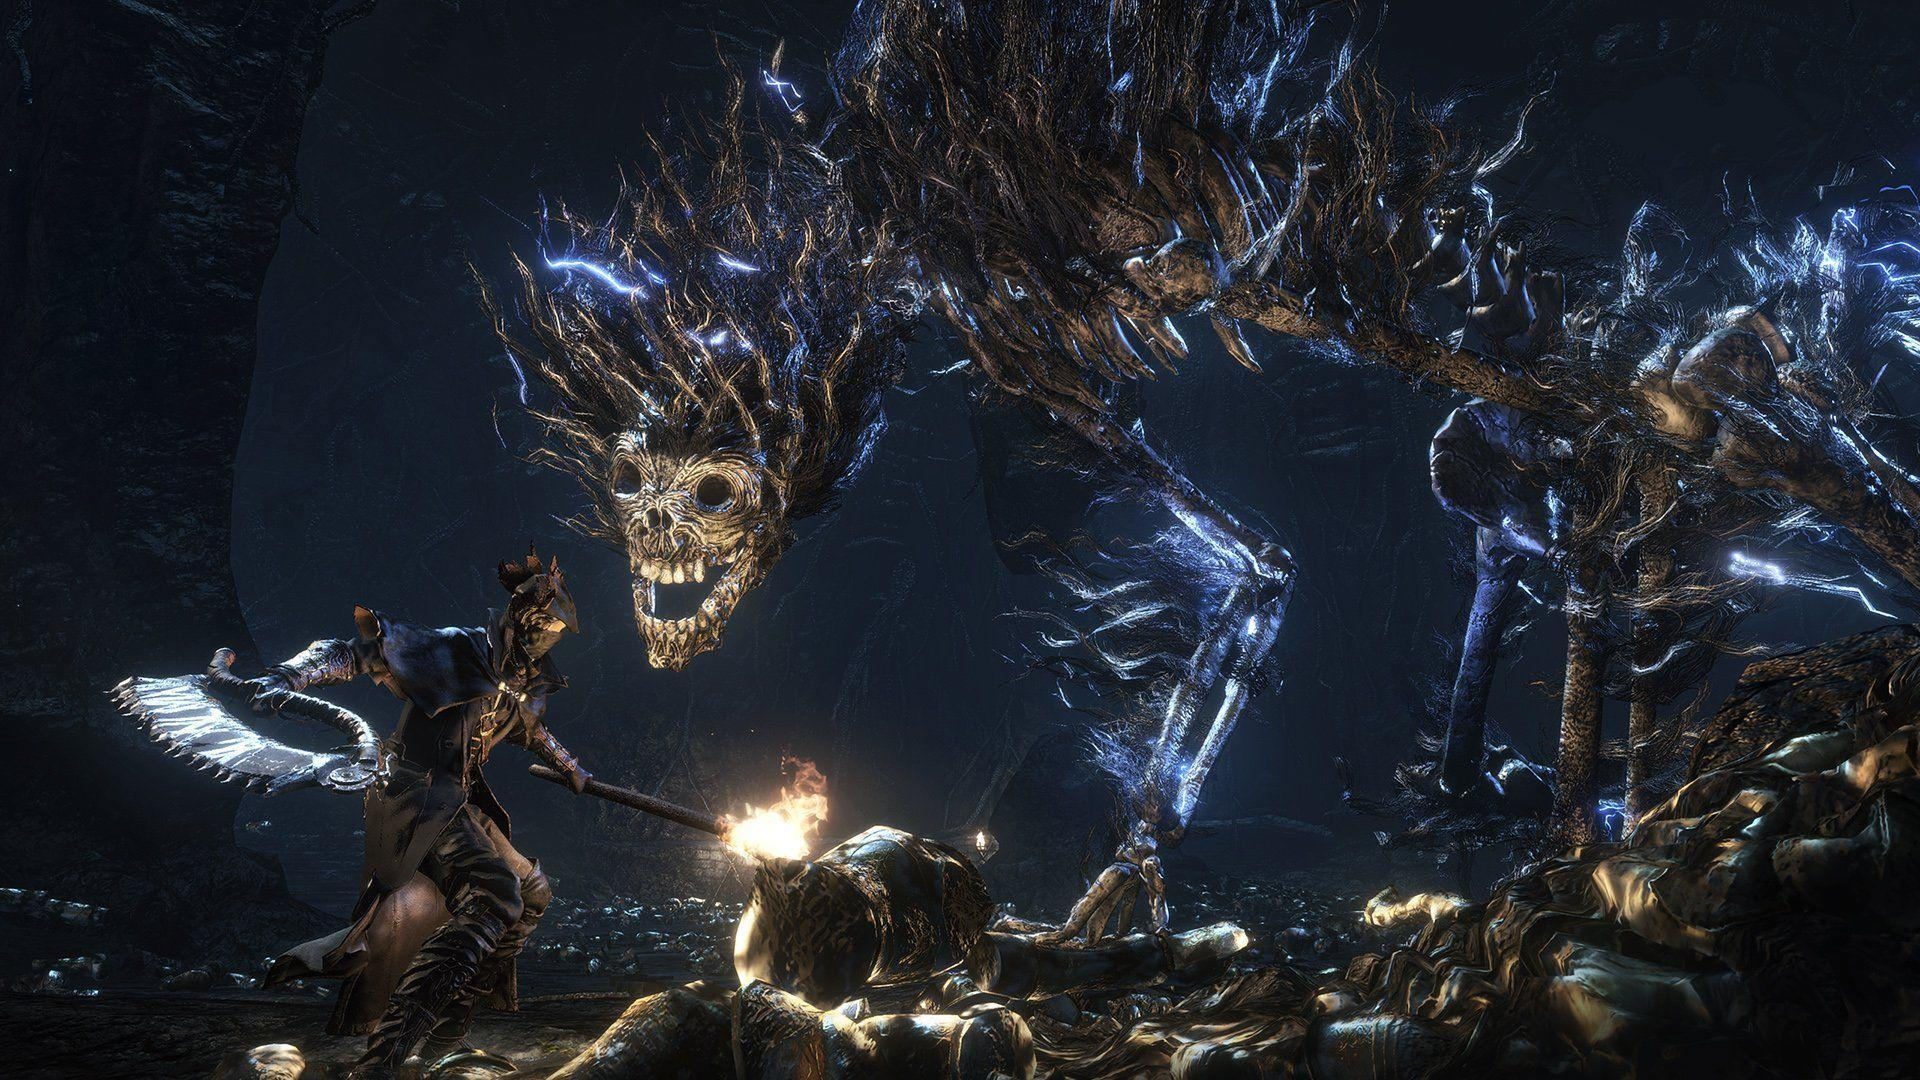 Bloodborne Wallpapers Wallpaper Cave